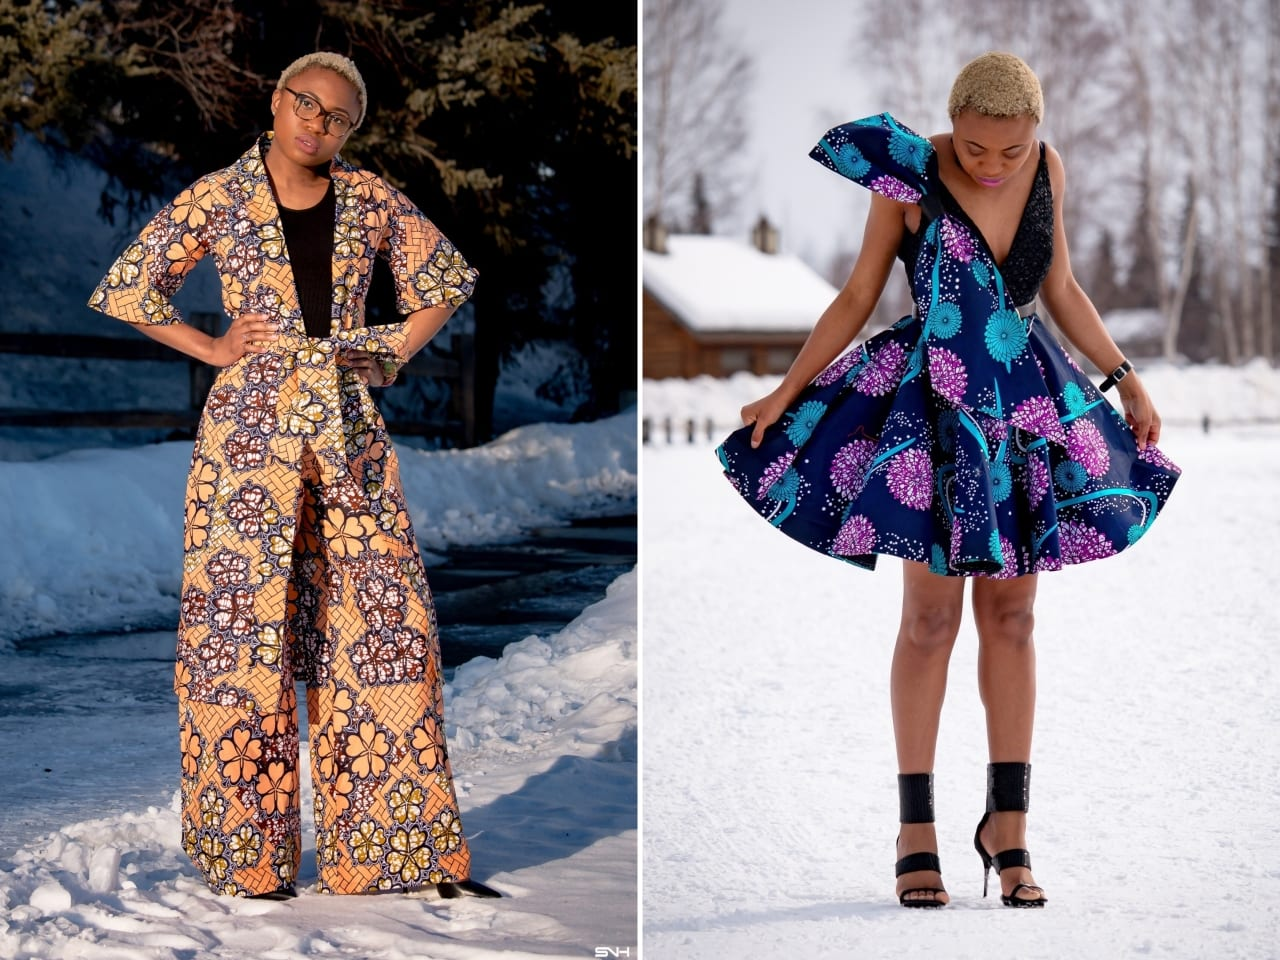 The Best African Outfits for Women. Fashion blogger, Louisa Moje of La Passion Voutee, rounds up ankara print styles from her African fashion series in this epic roundup post. Dashiki, African print dress, African fashion, African women dresses, African prints, Nigerian style. All about Ankara dresses, African prints, Nigerian fashion, African fashion, African print dresses, African dresses, Dashiki Dress, African clothing, African dress styles, African print dress